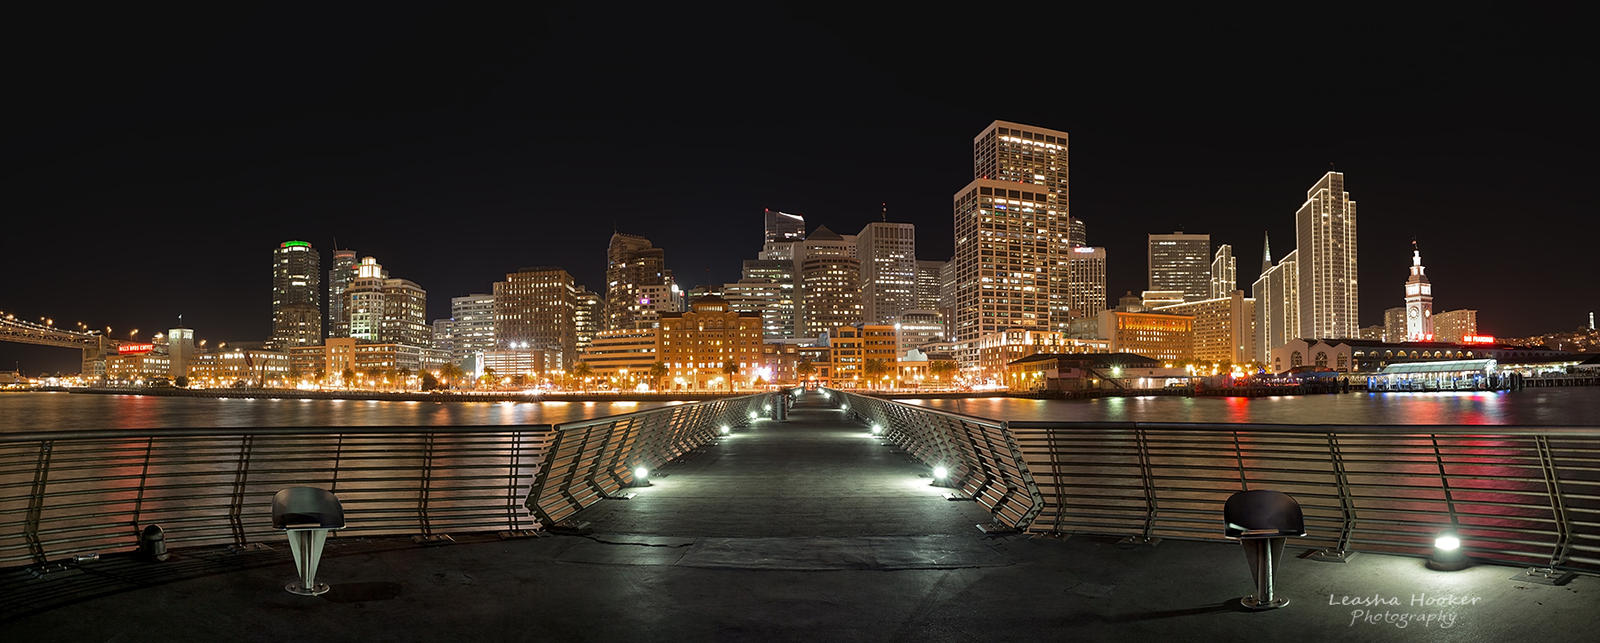 Pier 14 Pano by LeashaHooker